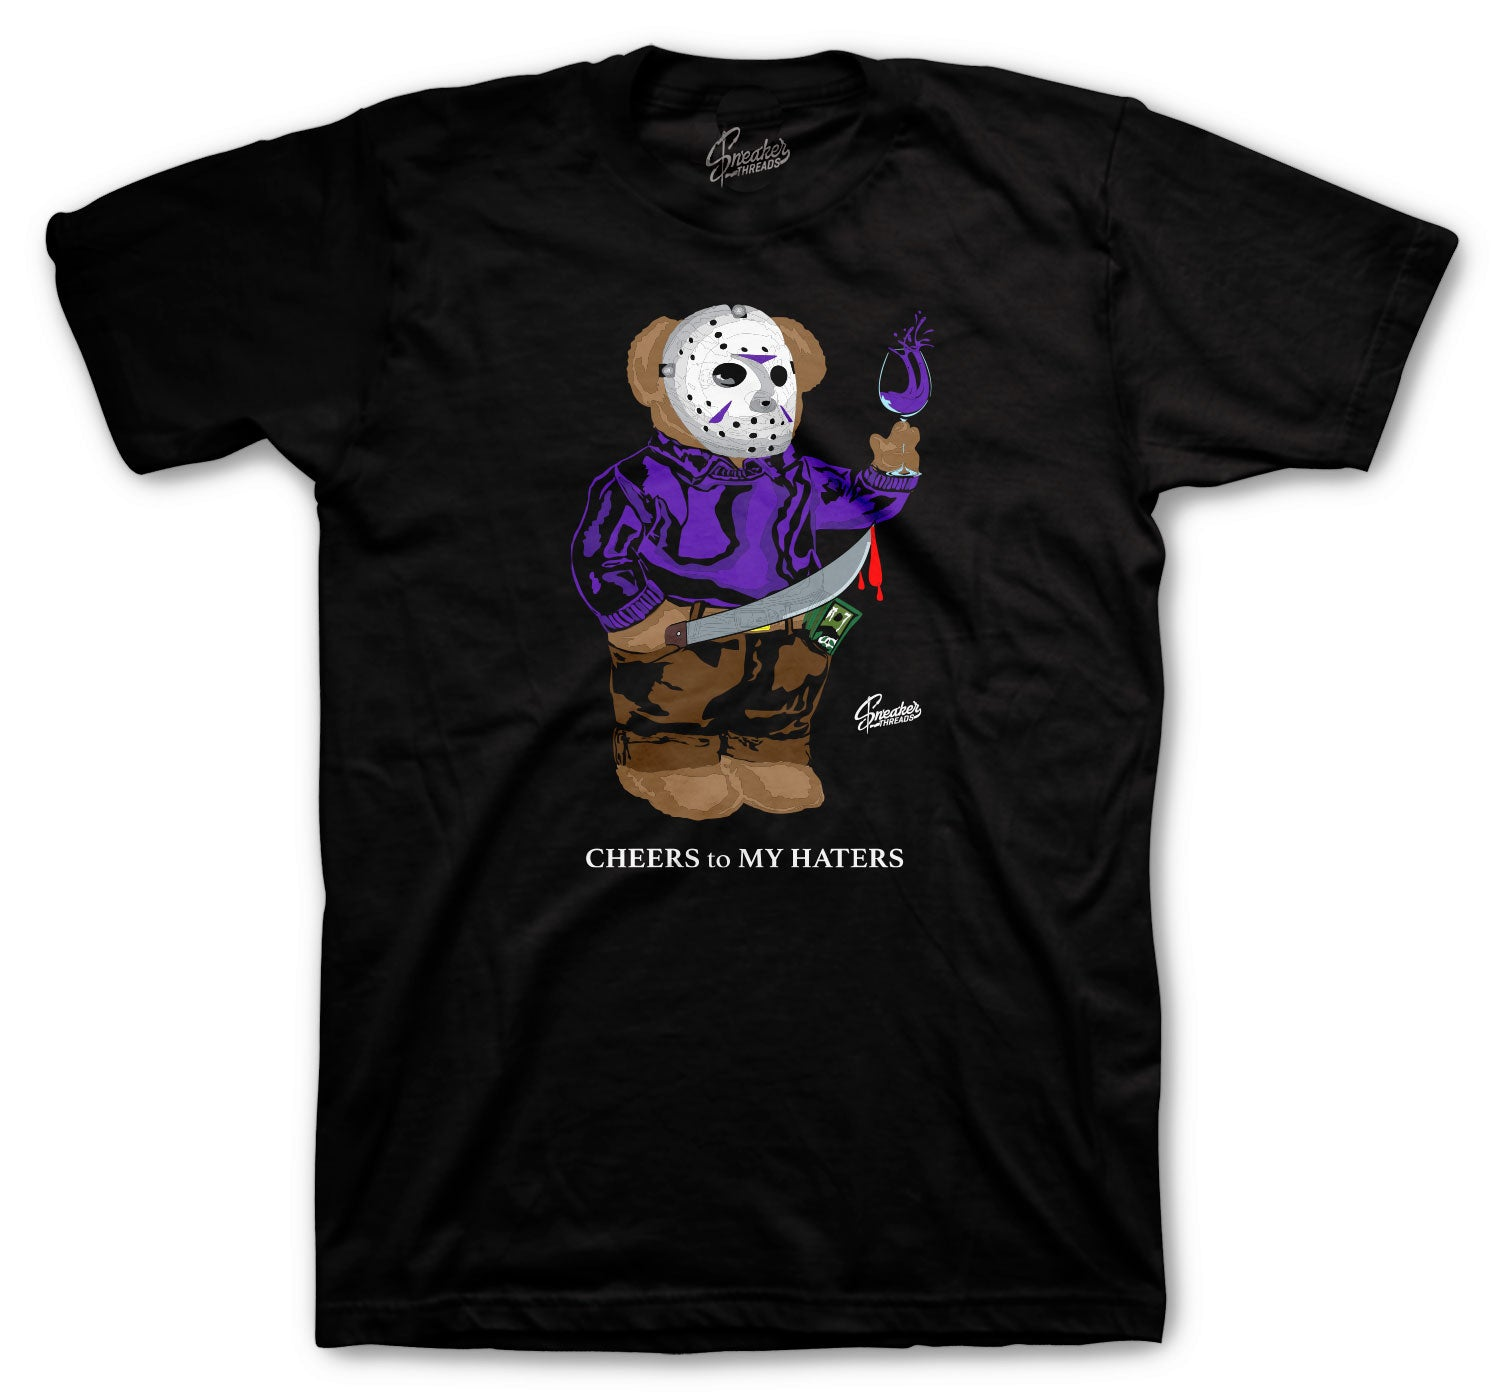 Jordan 12 Dark Concord Shirt - Jason Bear - Black